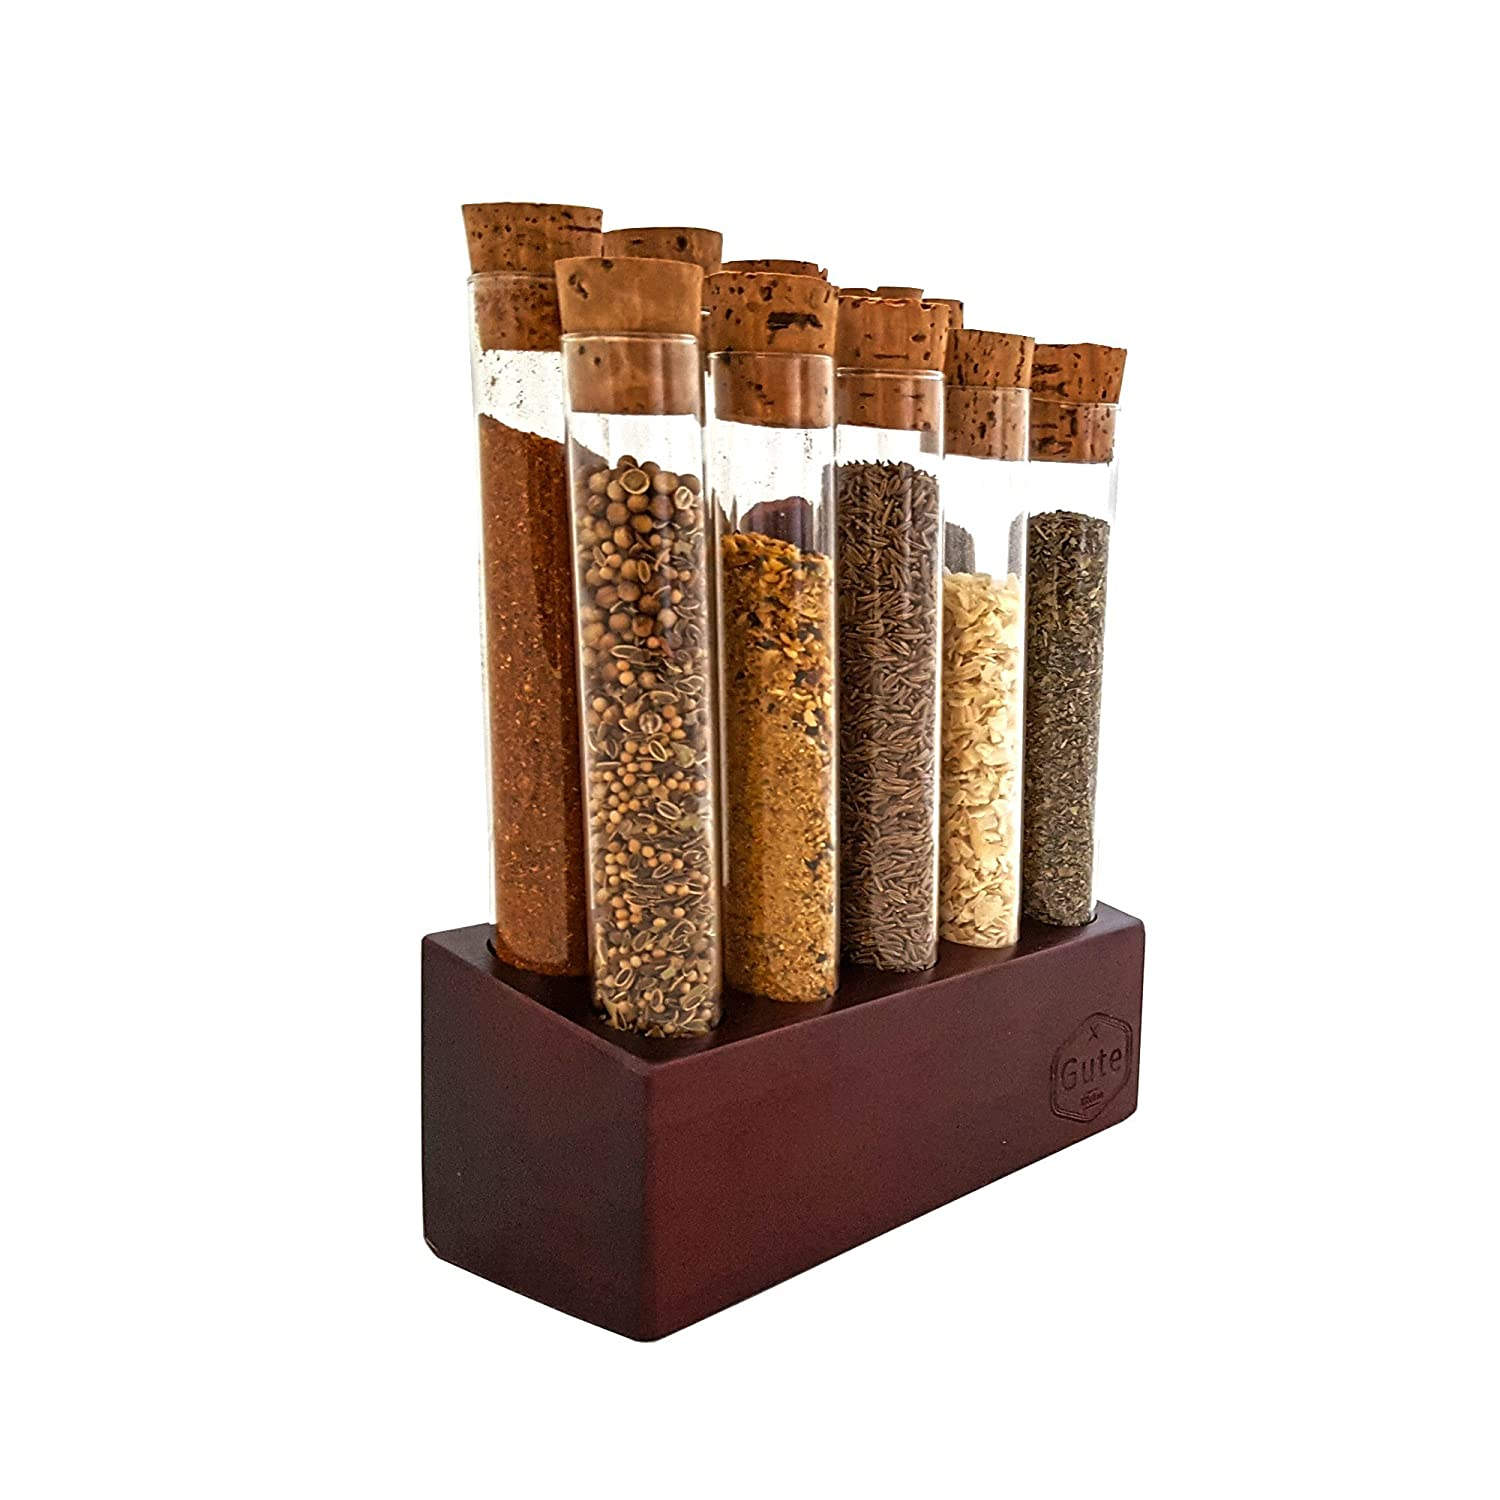 Gute Test Tube Spice Rack, Large Borosilicate Modern Design Glass Test Tubes and Mahogany Stained Wood With Cork Caps (10 Tubes)